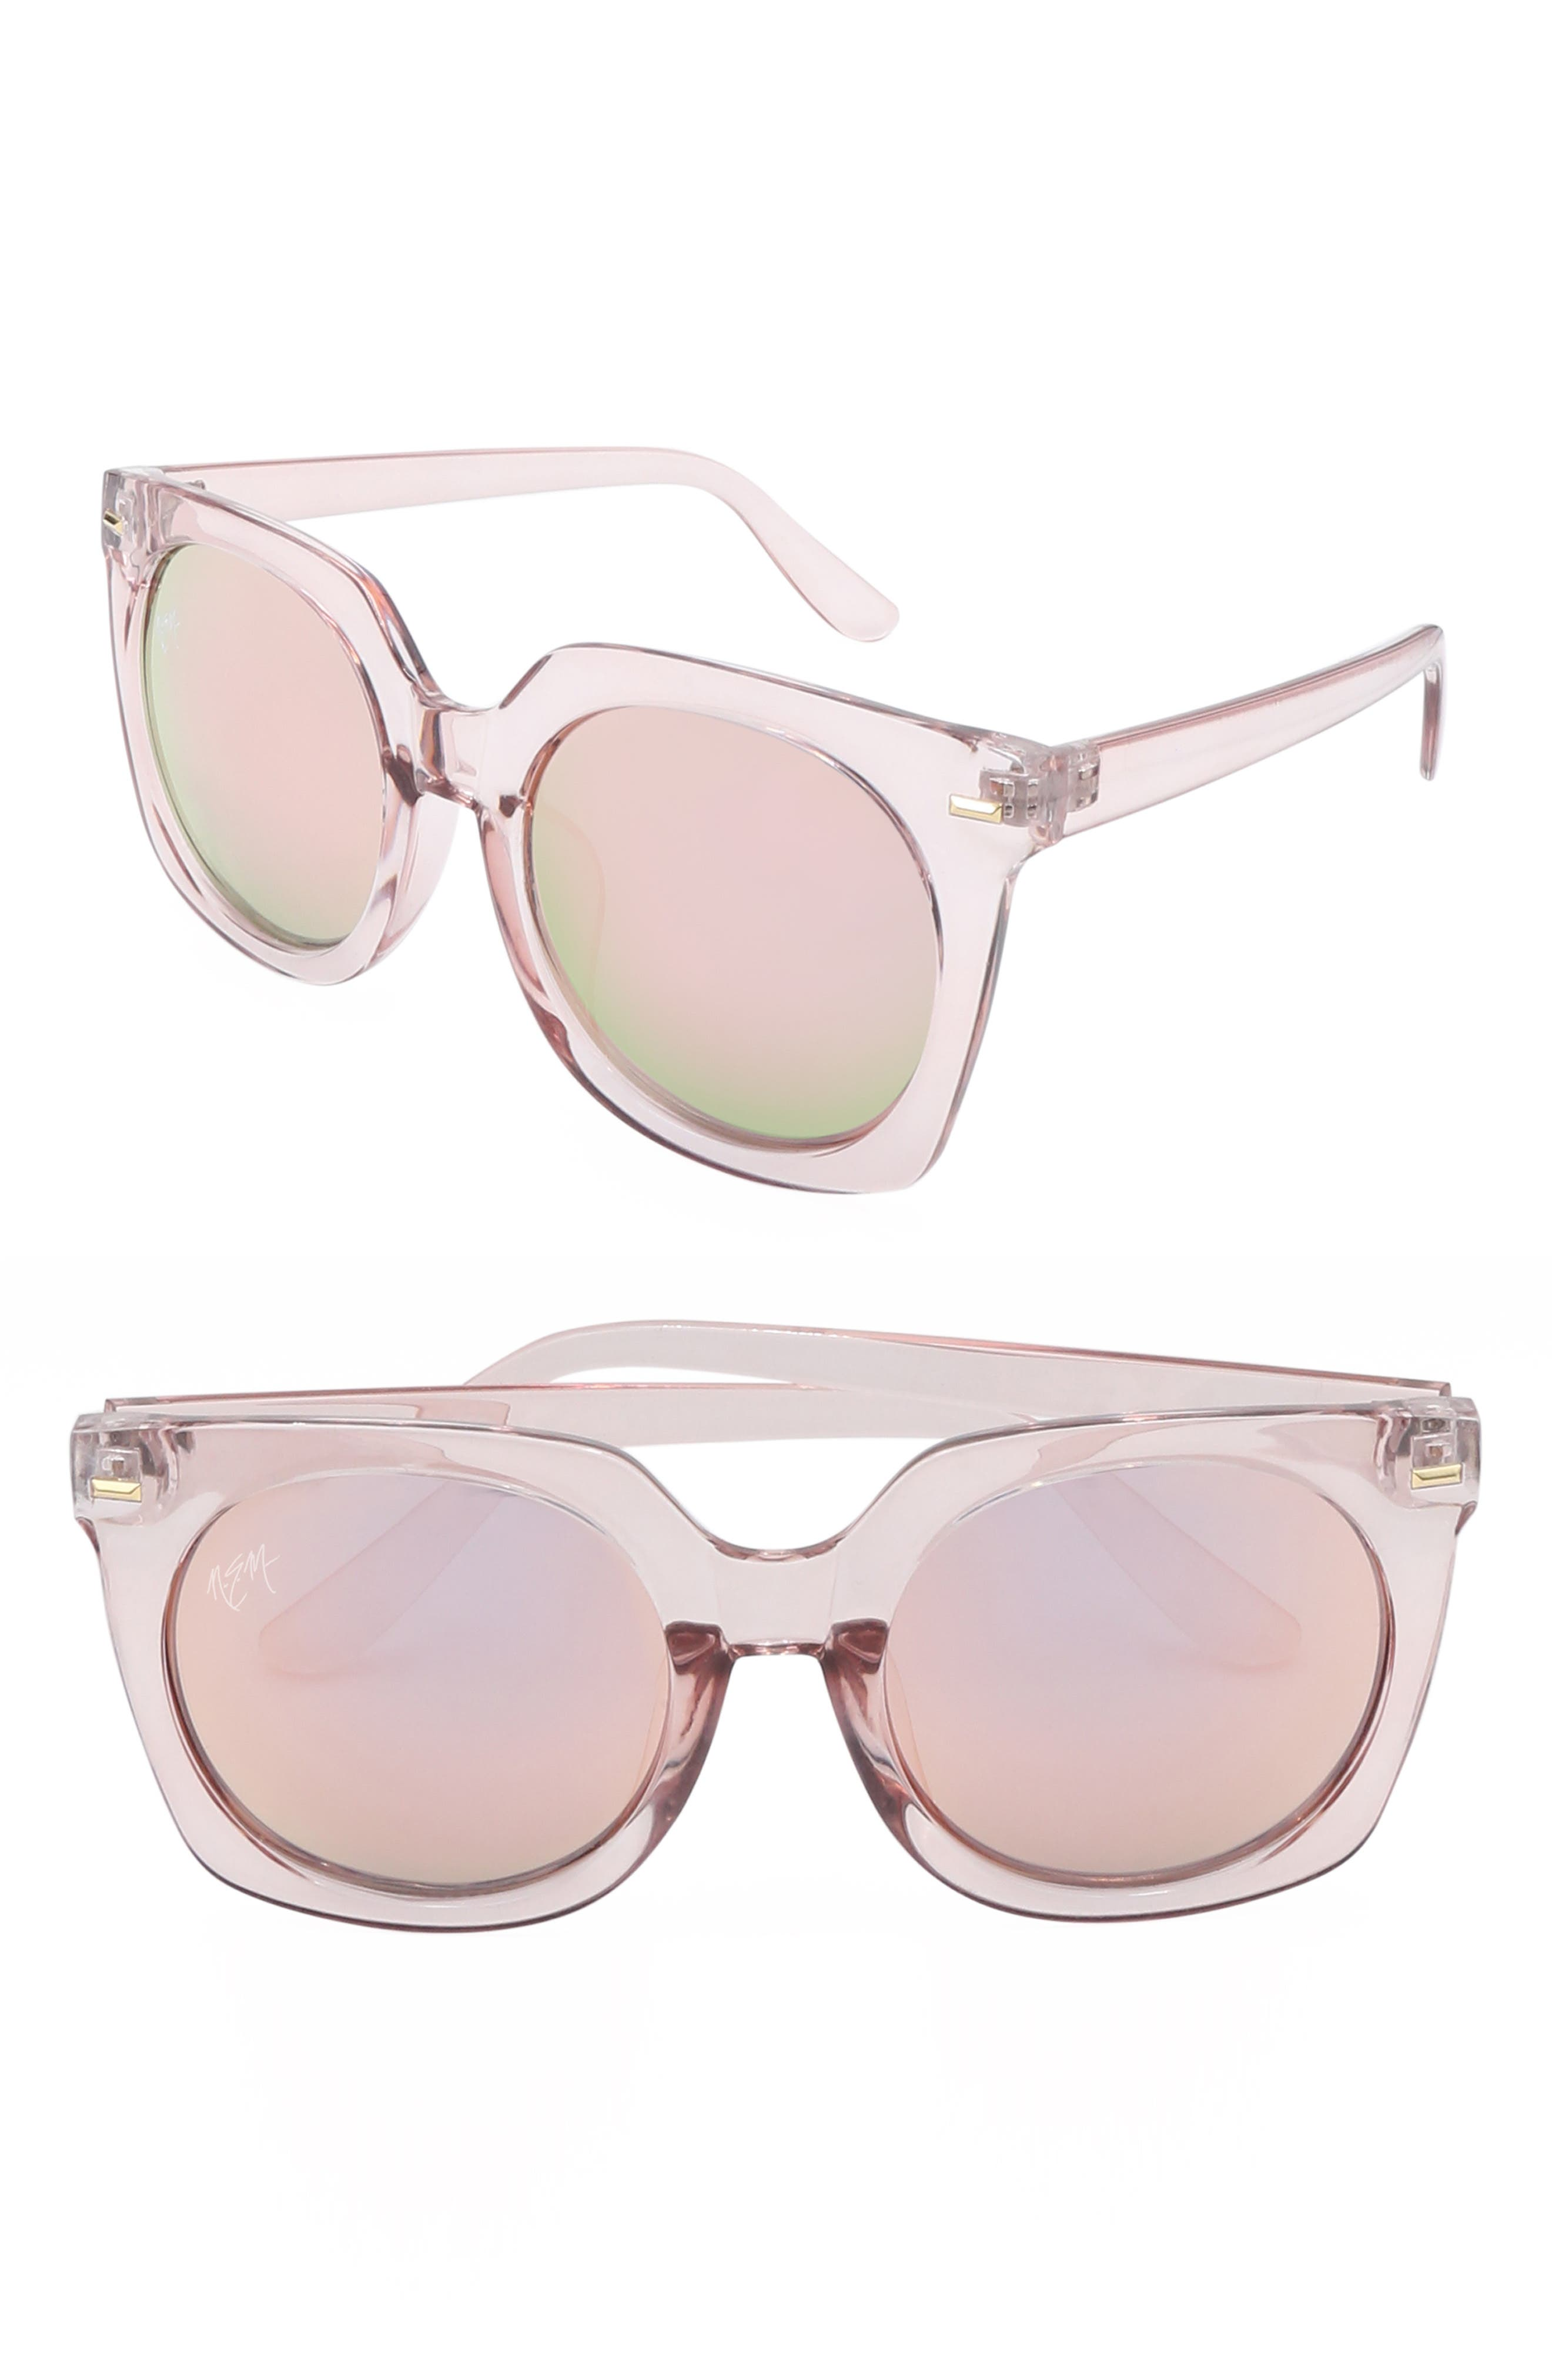 Melrose 55mm Square Sunglasses,                         Main,                         color, CLEAR CANDY PINK W PINK TINT